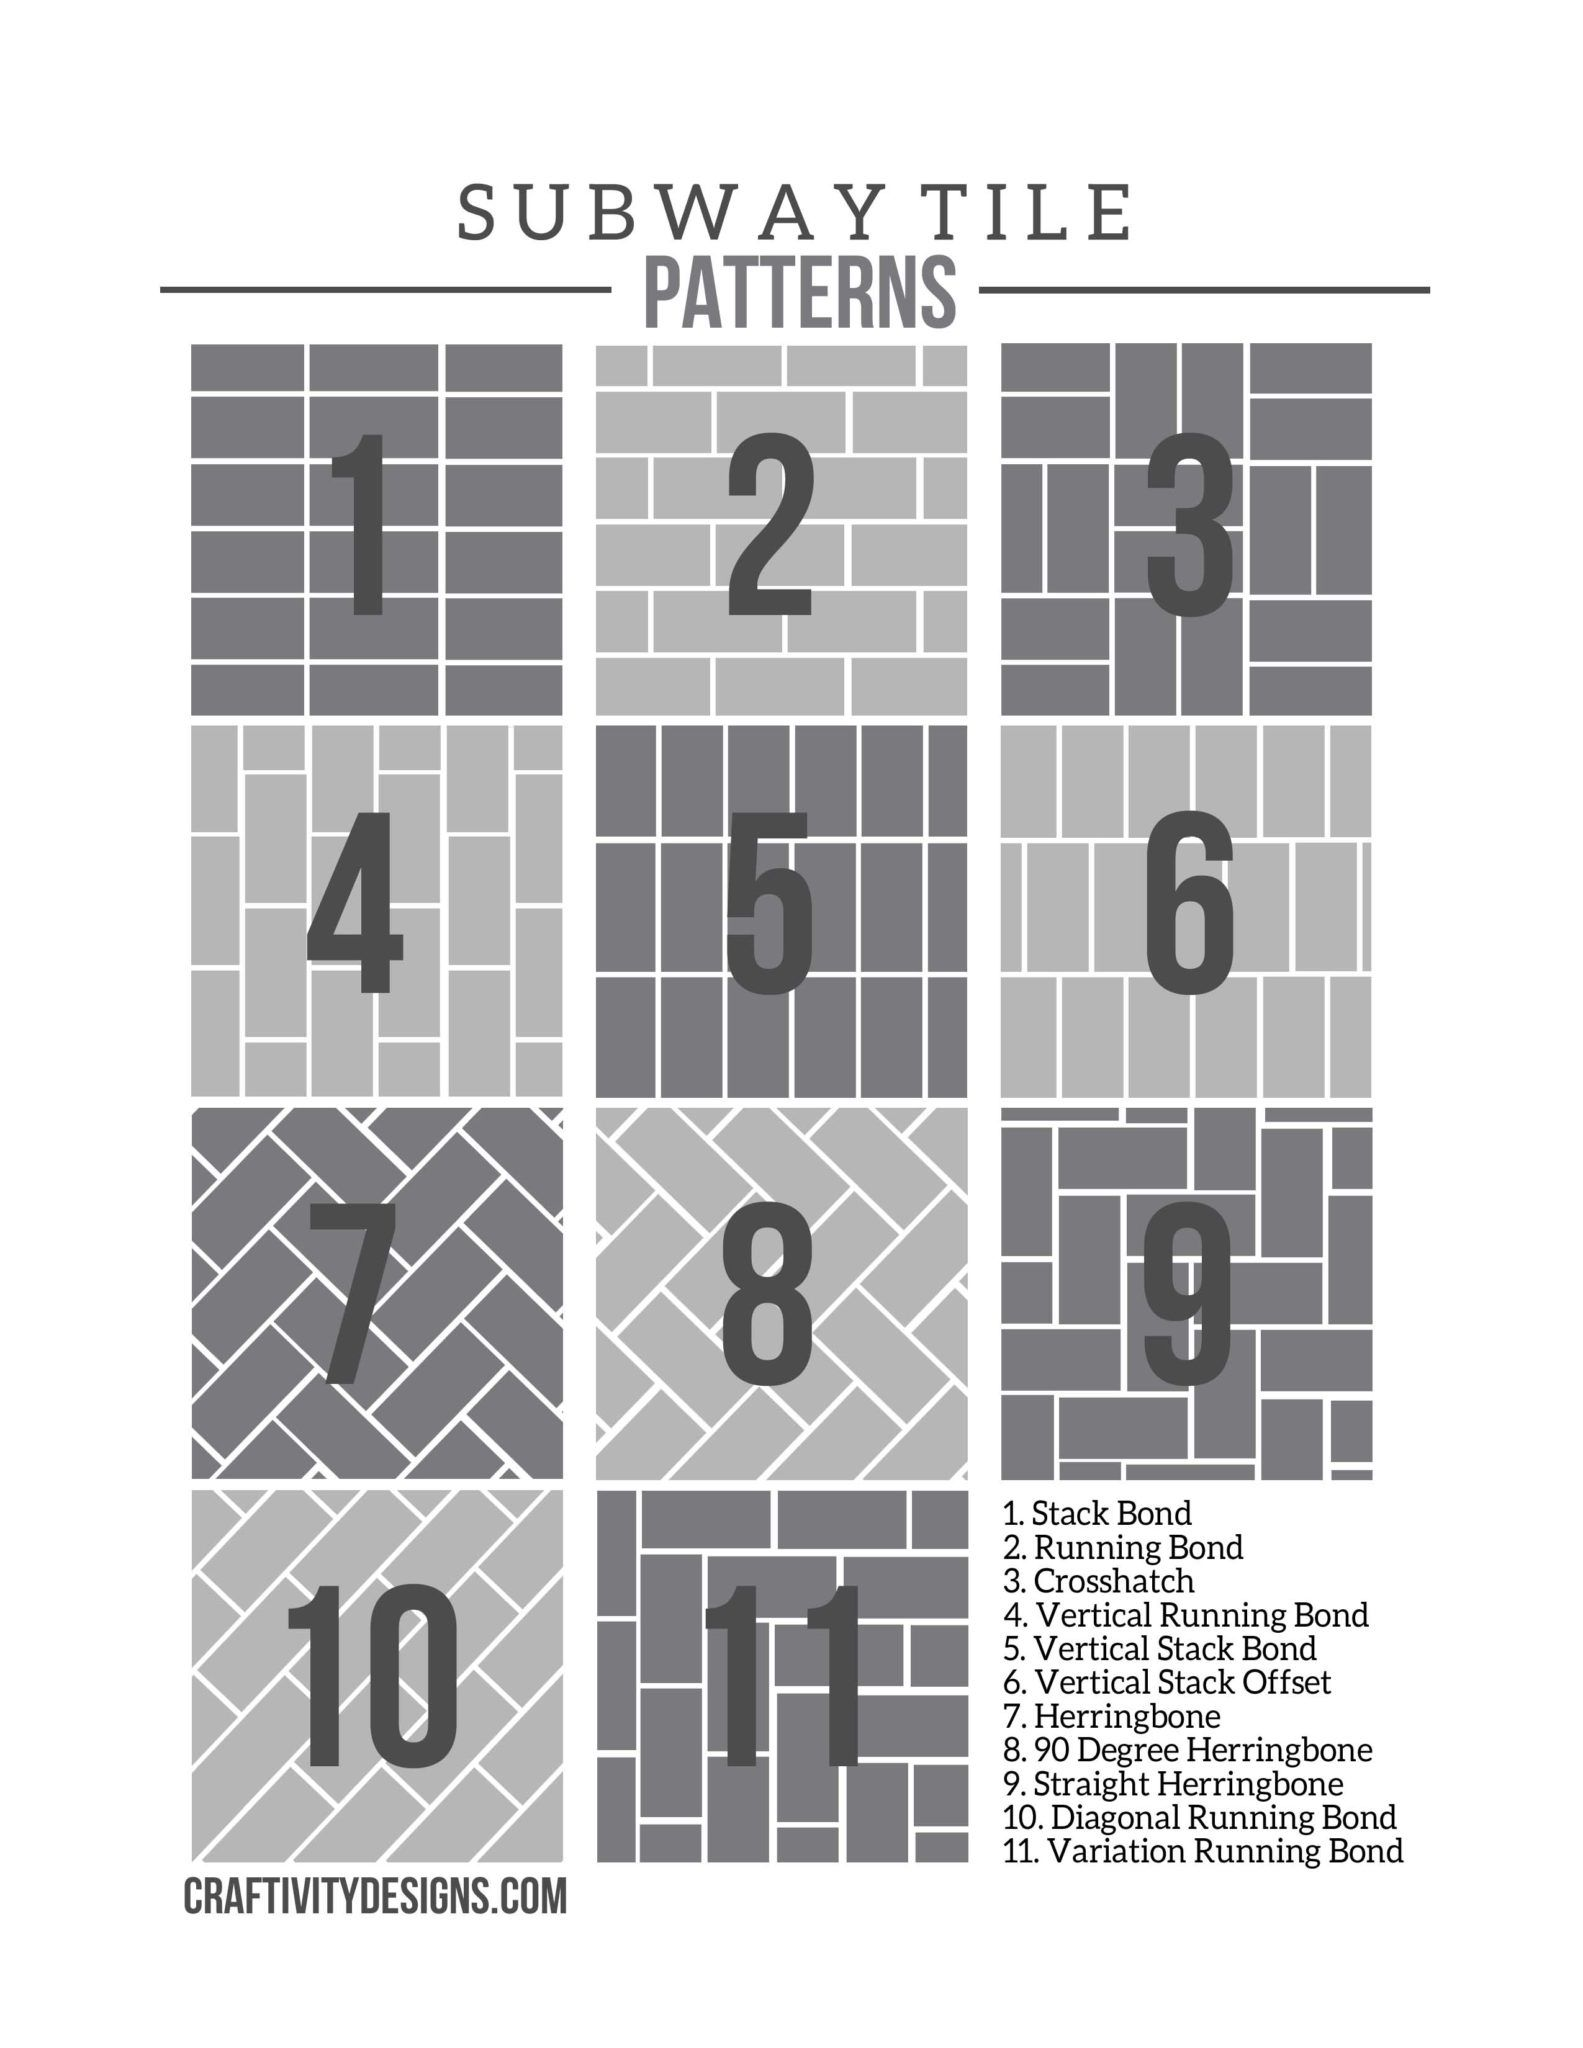 50 subway tile ideas free tile pattern template diy - Free online bathroom design templates ...